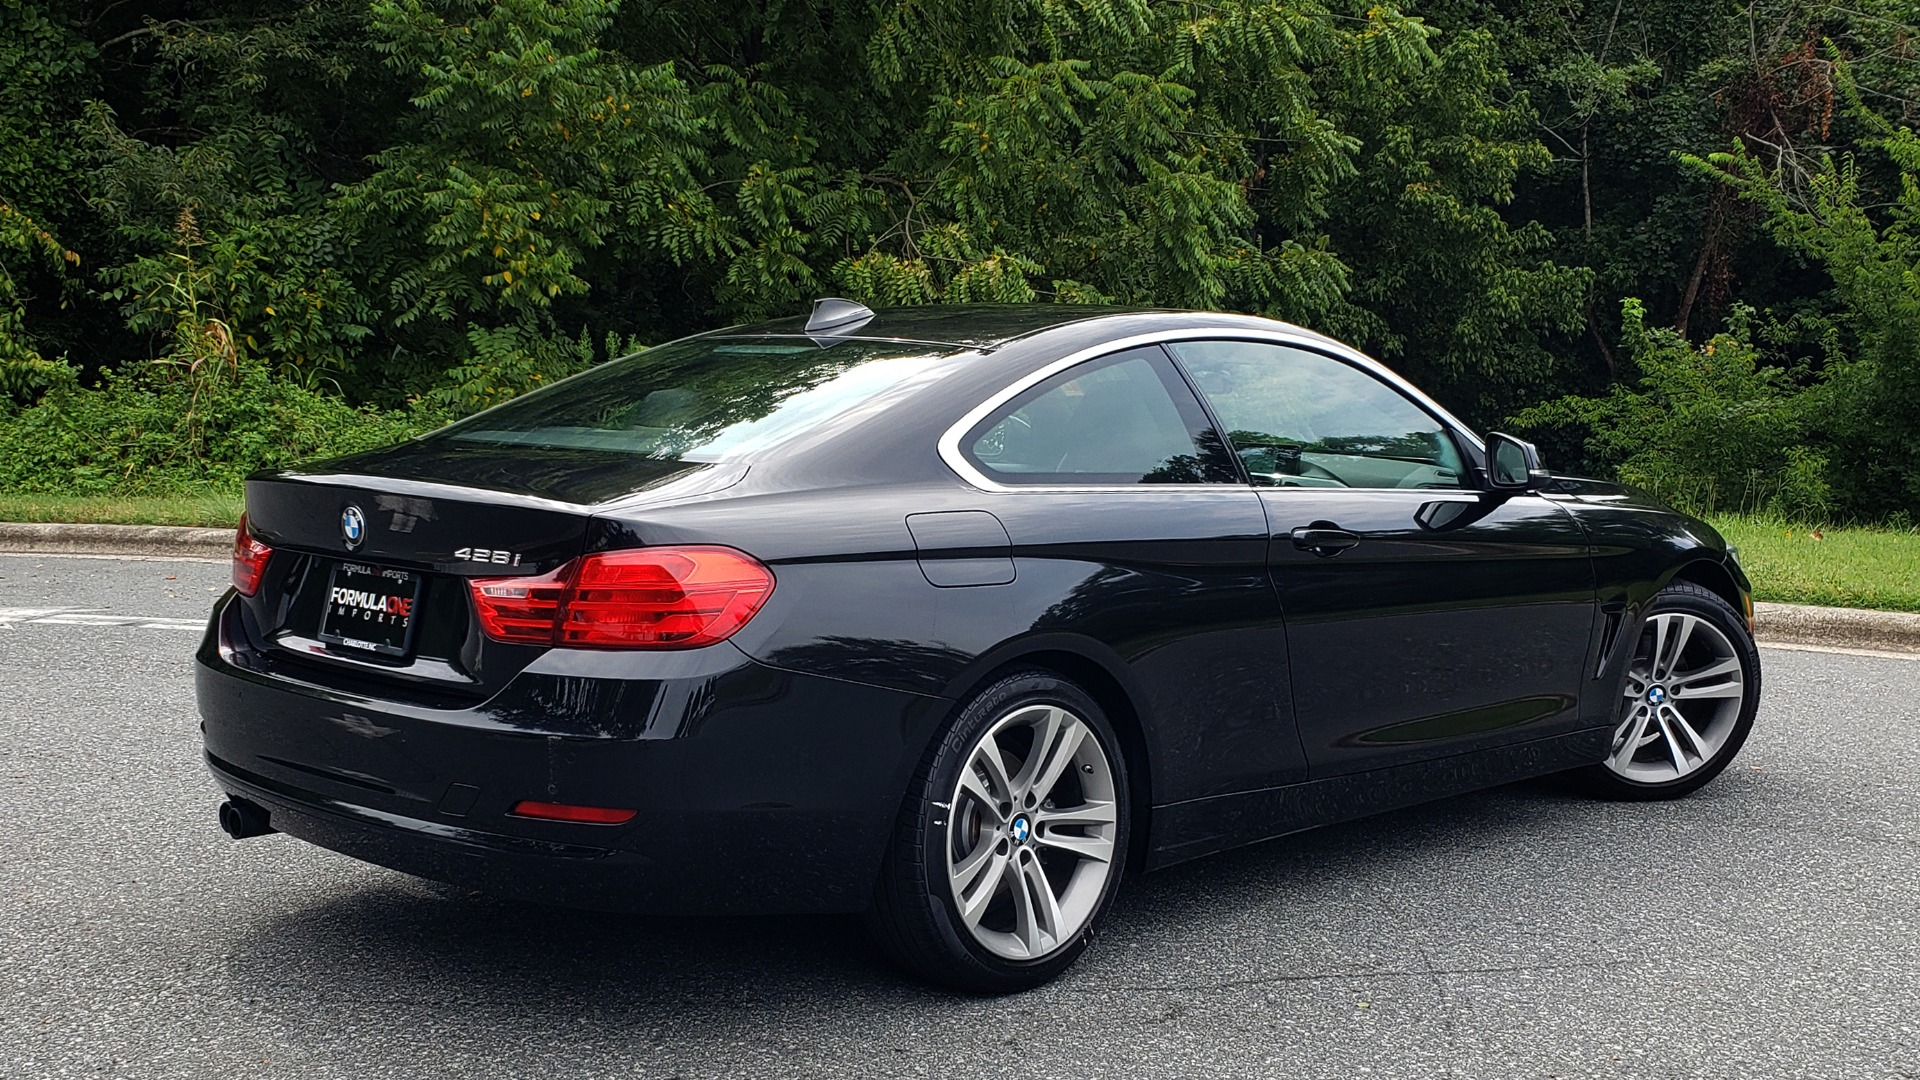 Used 2016 BMW 4 SERIES 428I PREMIUM COUPE / 2.0L / AUTO / NAV / SUNROOF / HEATED SEATS for sale $22,995 at Formula Imports in Charlotte NC 28227 6